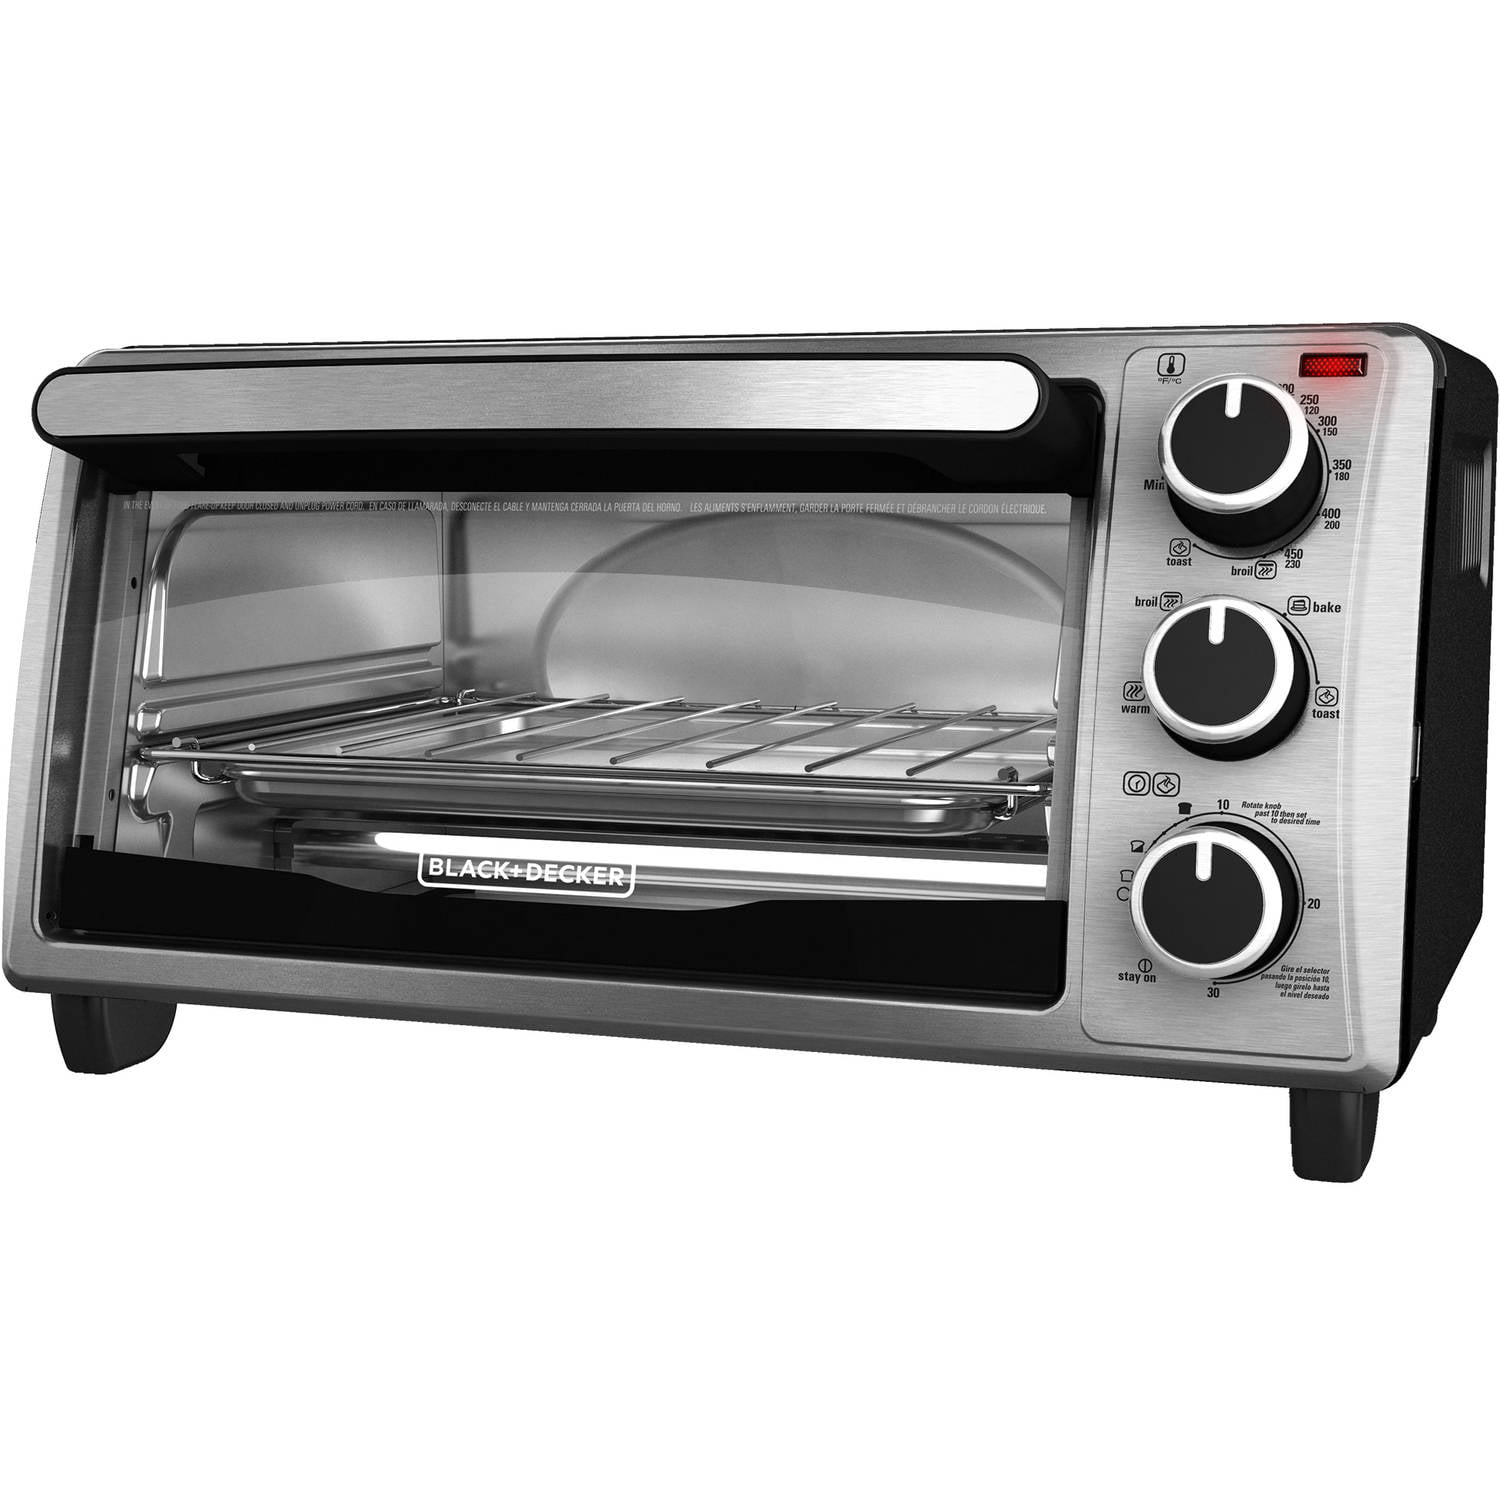 cuisinart com page fryer convection air oven light toaster qvc with product for sale